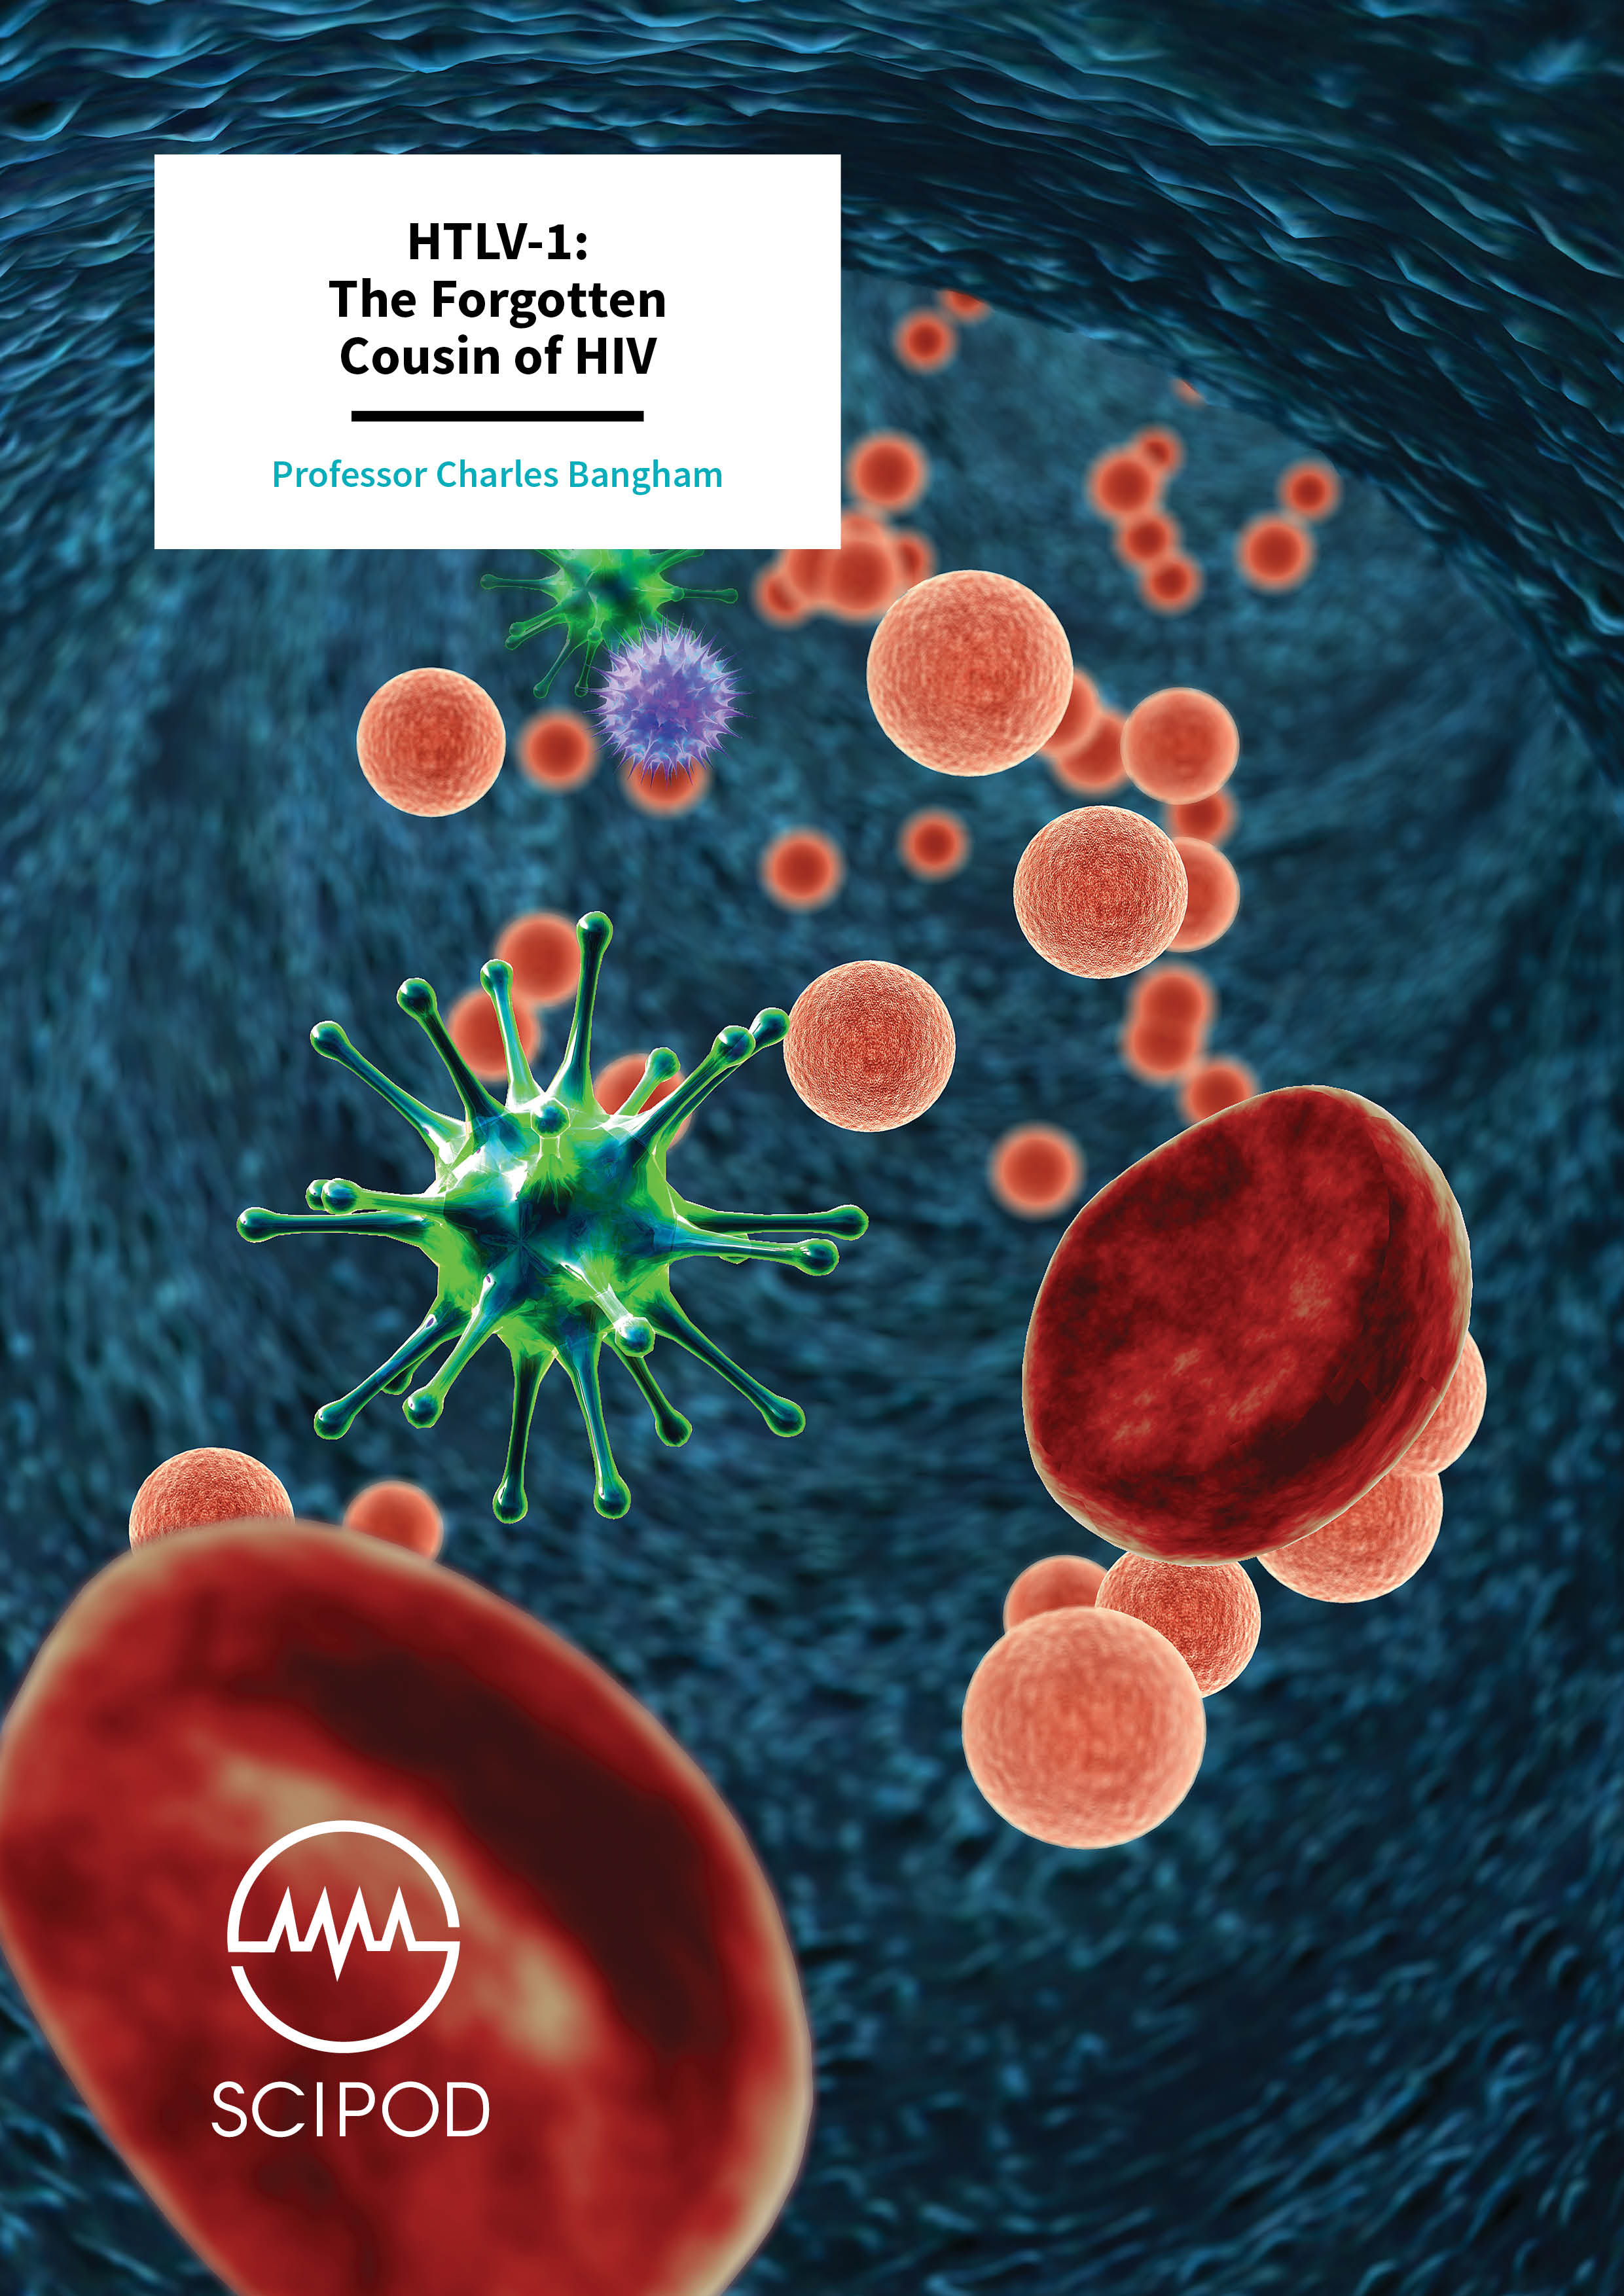 HTLV-1 The Forgotten Cousin of HIV